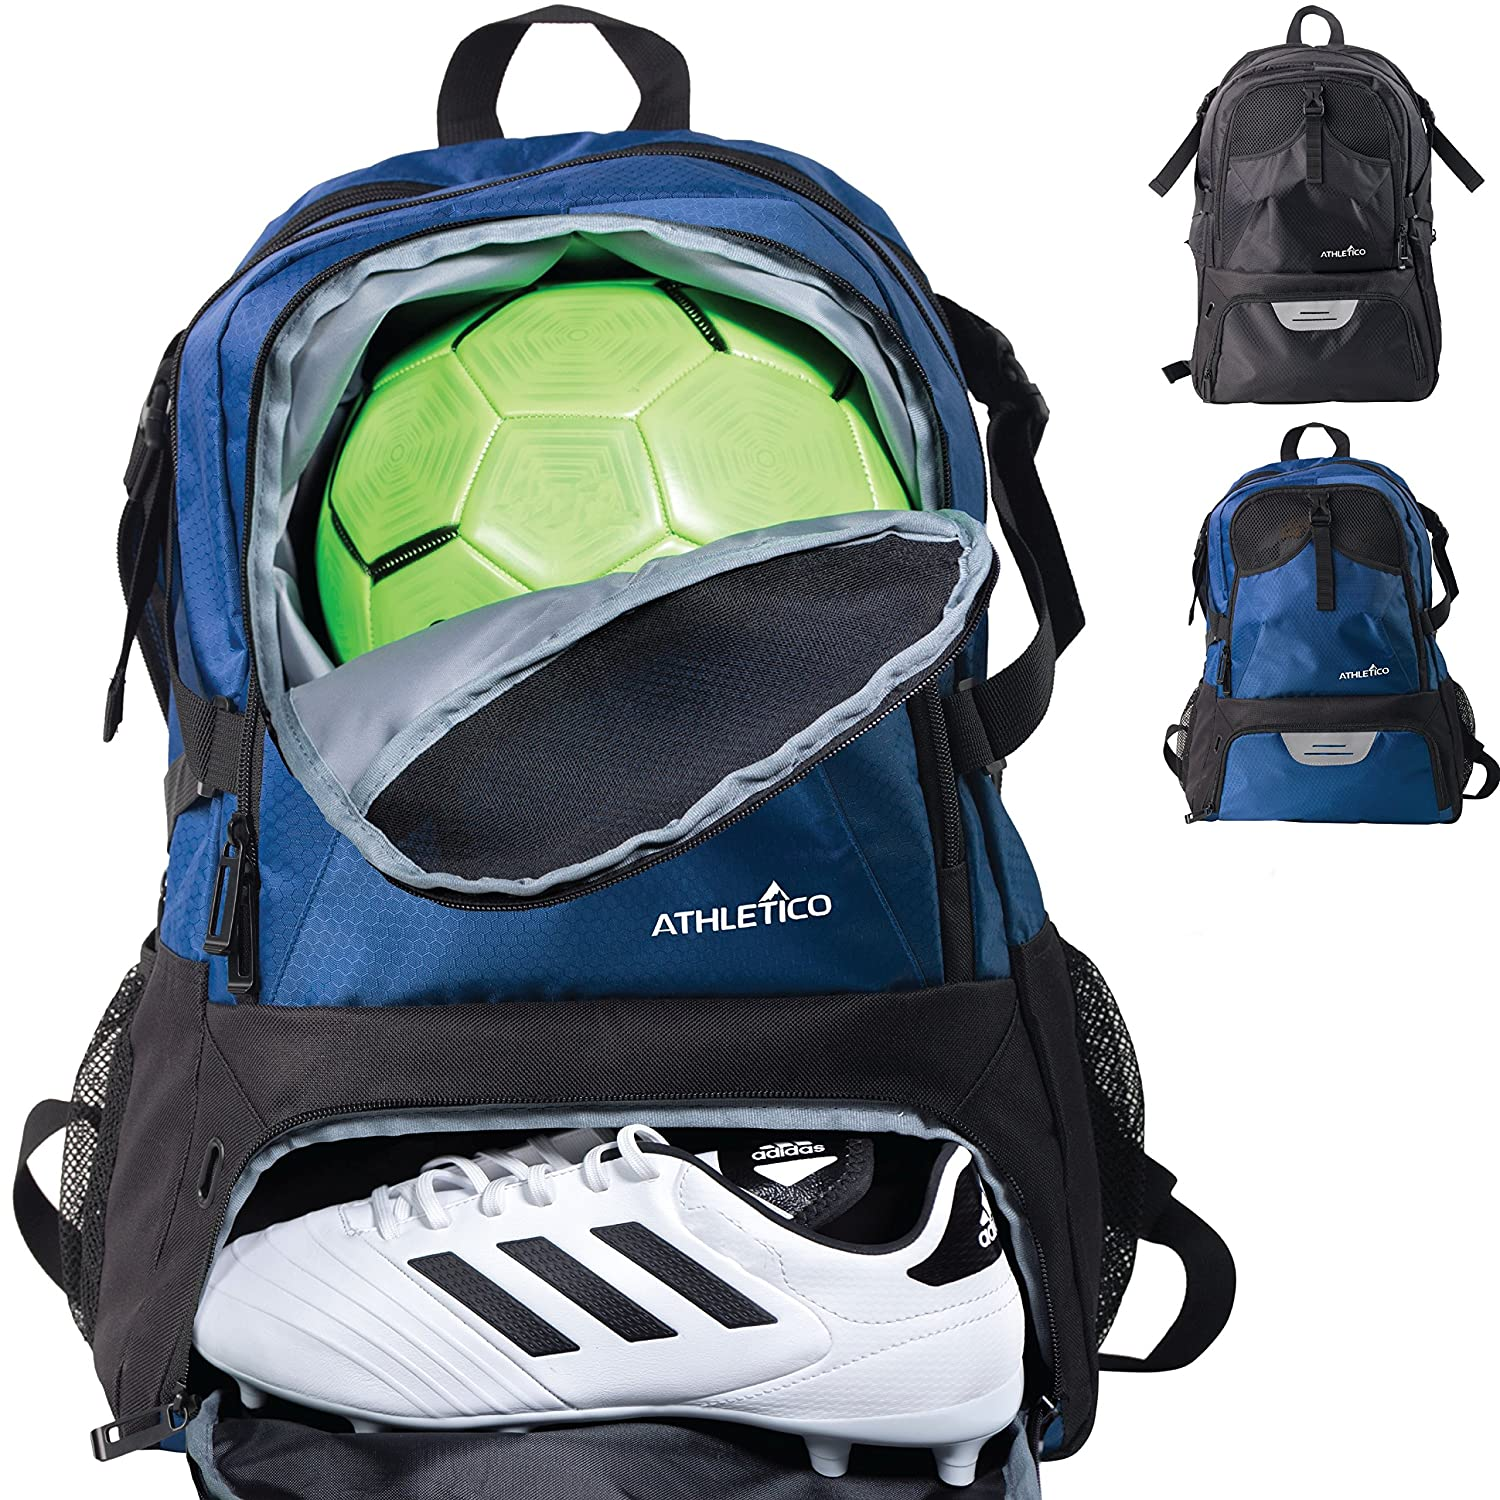 Athletico National Football Bag - Backpack for Football, Basketball & Volleyball Includes Separate Cleat and Ball Compartments